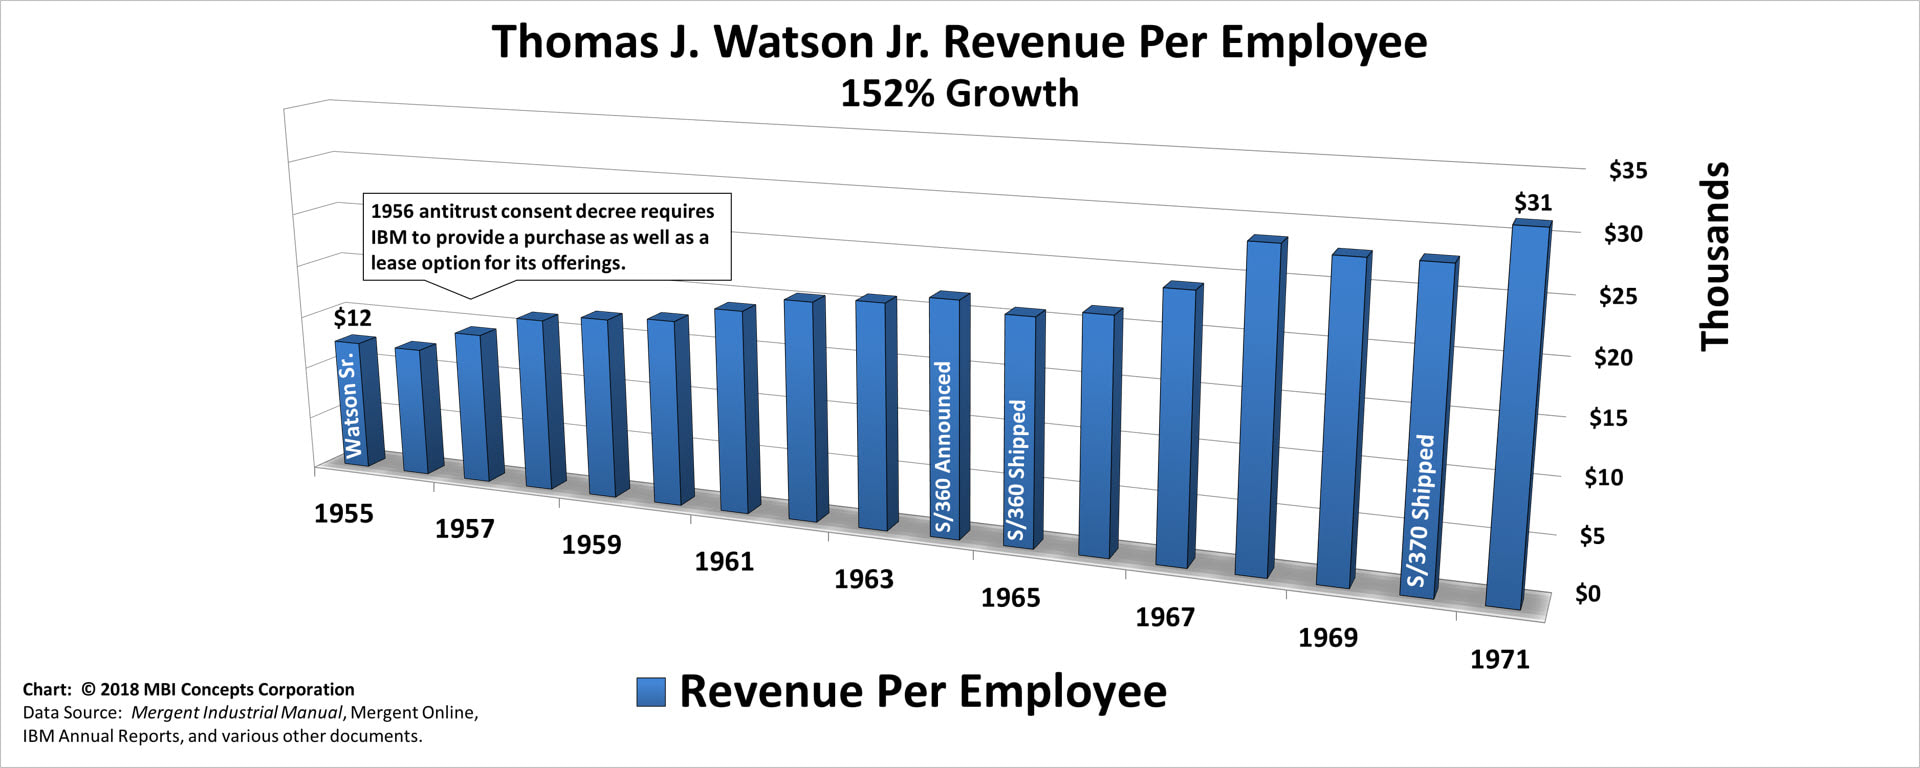 Bar chart of Thomas J. Watson Jr.'s Yearly Revenue per Employee over his 15 years as IBM's CEO from 1956 to 1971.